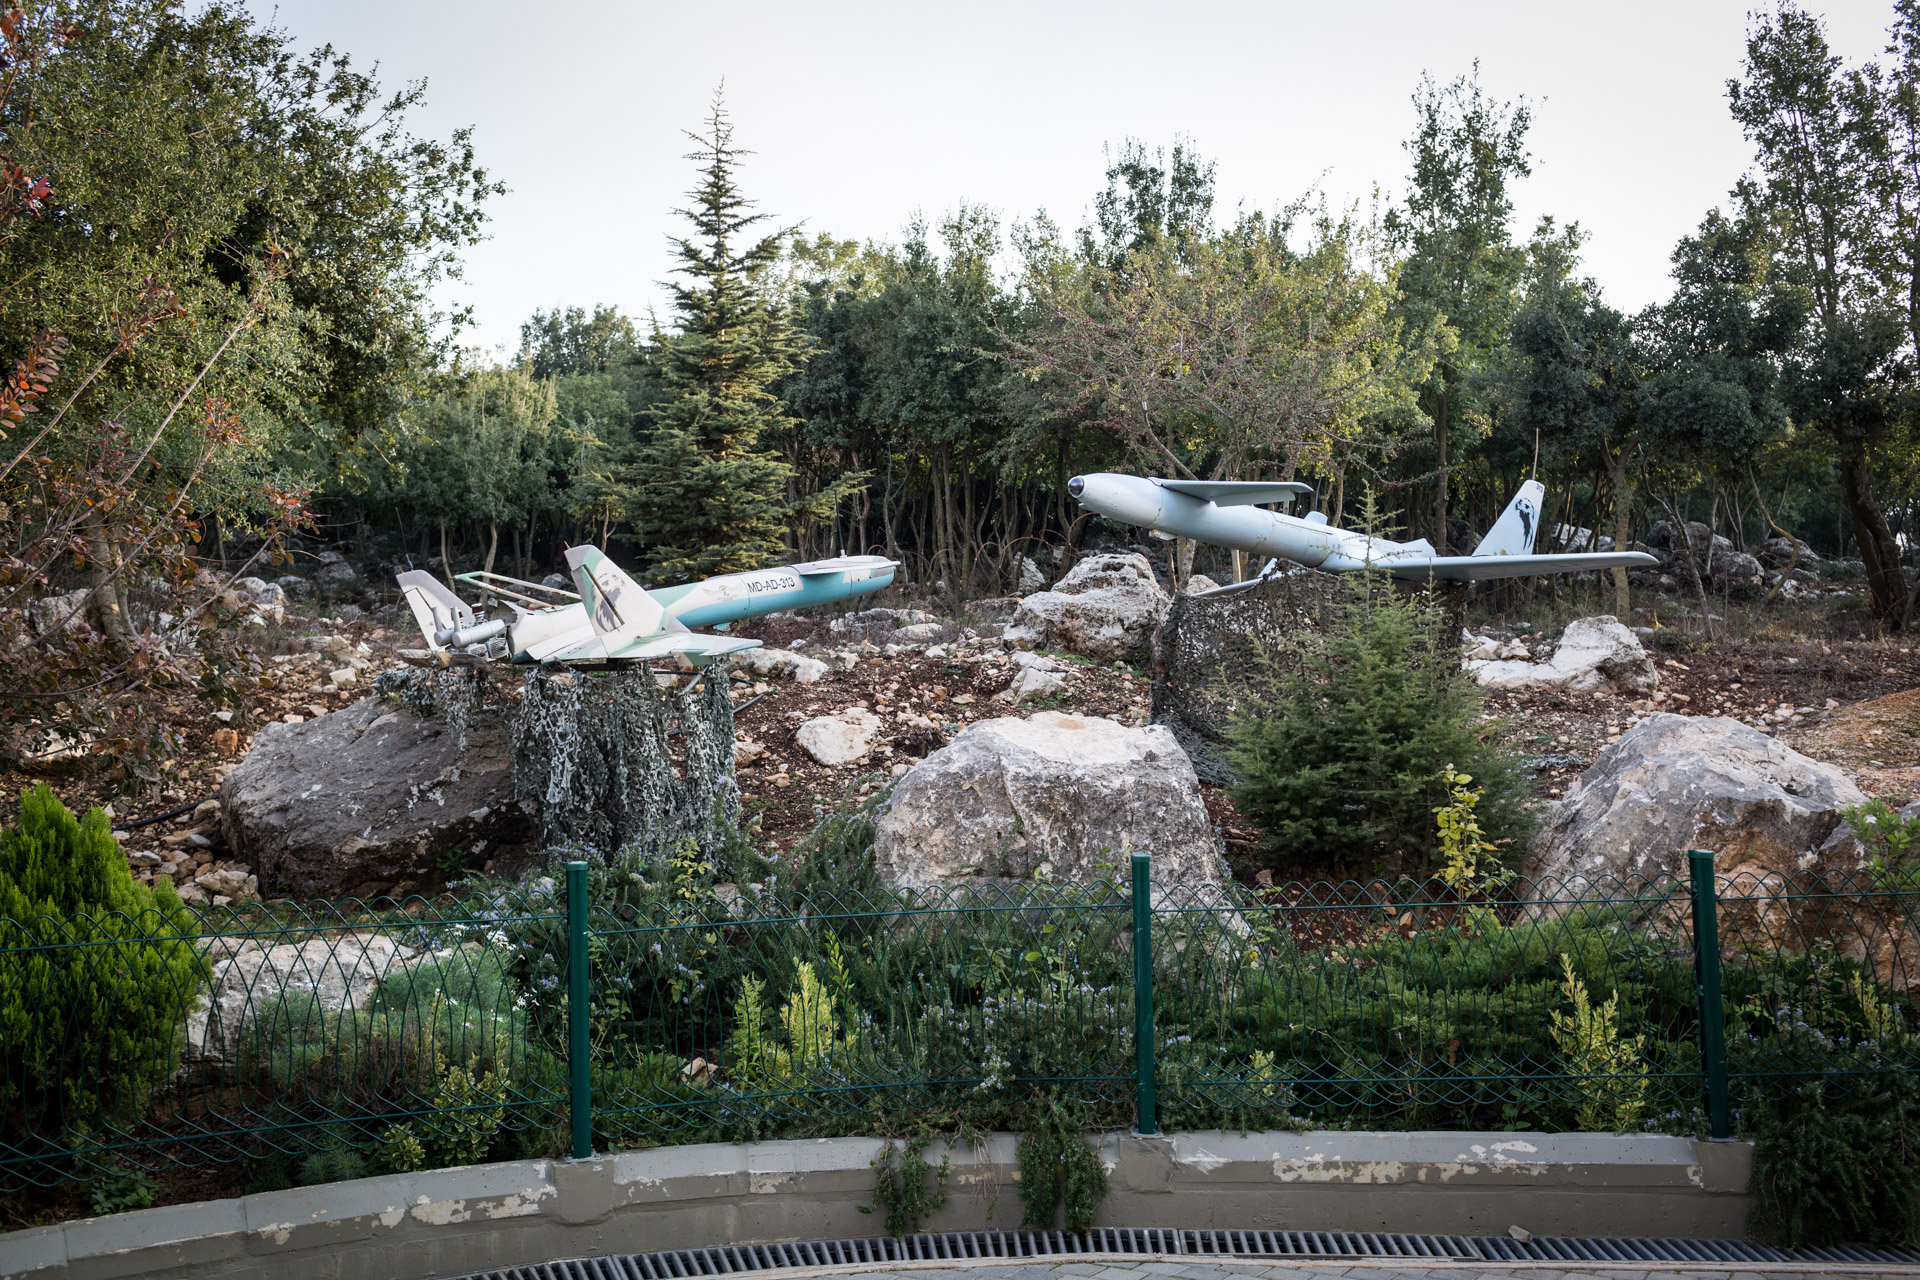 Two drones formerly operated by Hezbollah are on display in the outside compound of Mleeta.